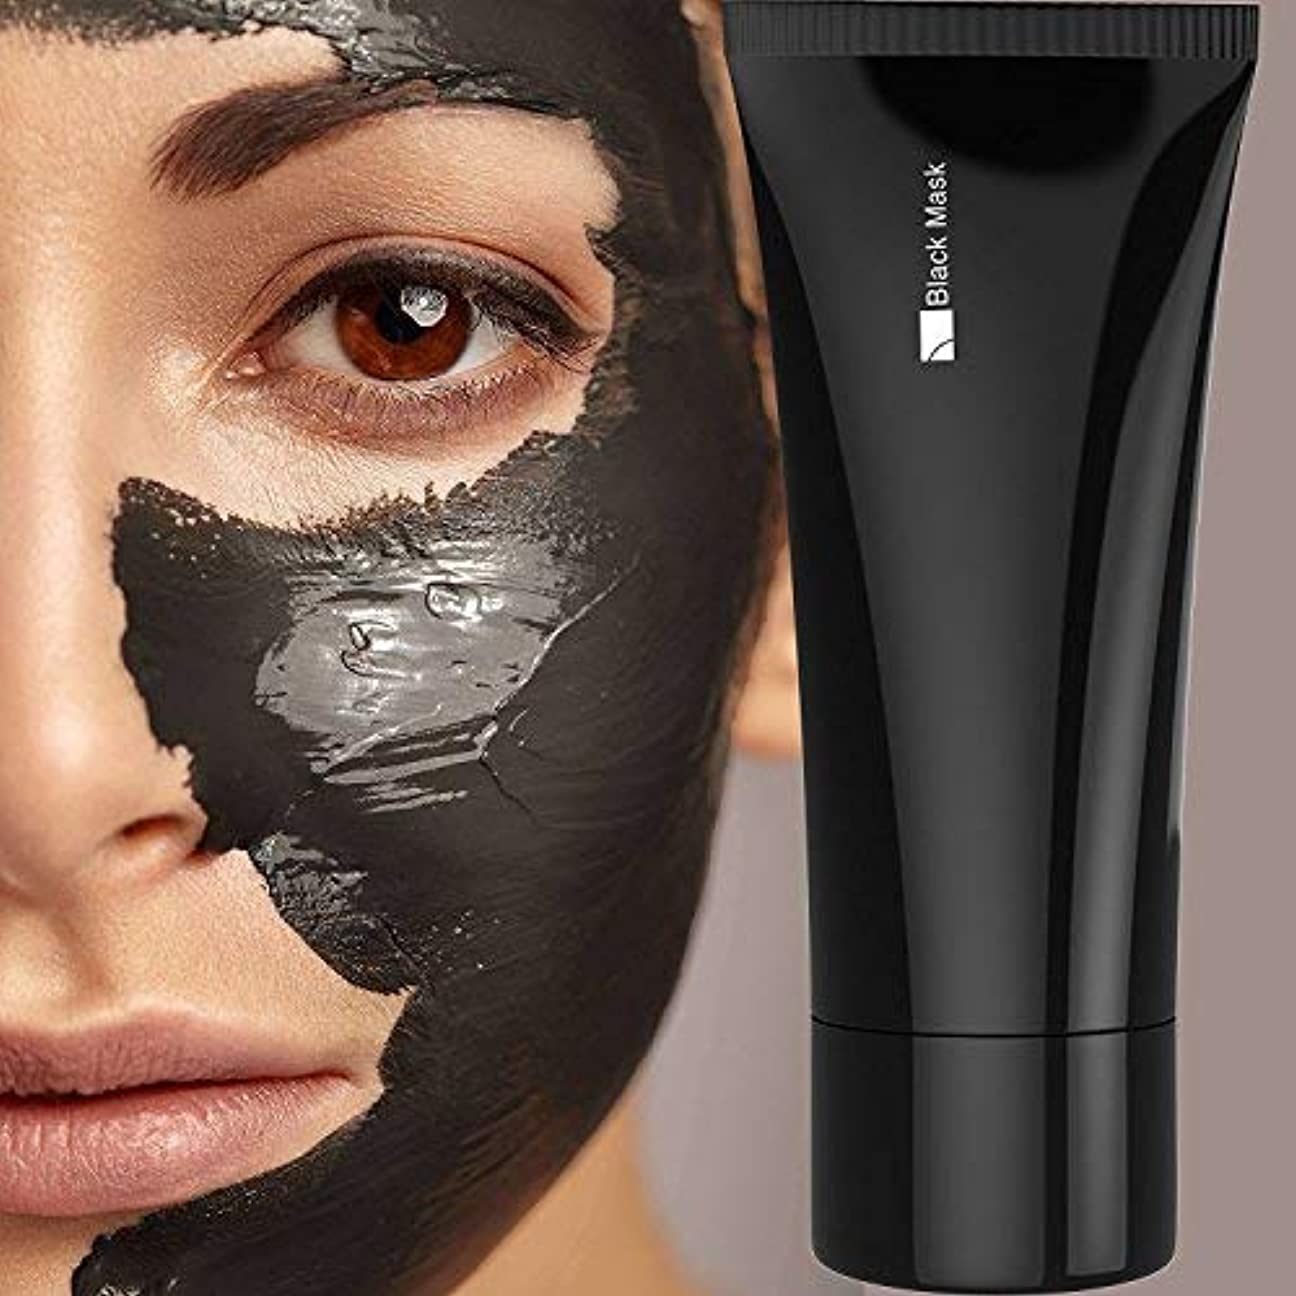 Face apeel Blackhead Remover Cleaner Purifying Deep Cleansing Acne Black Mud Face Mask Peel-off